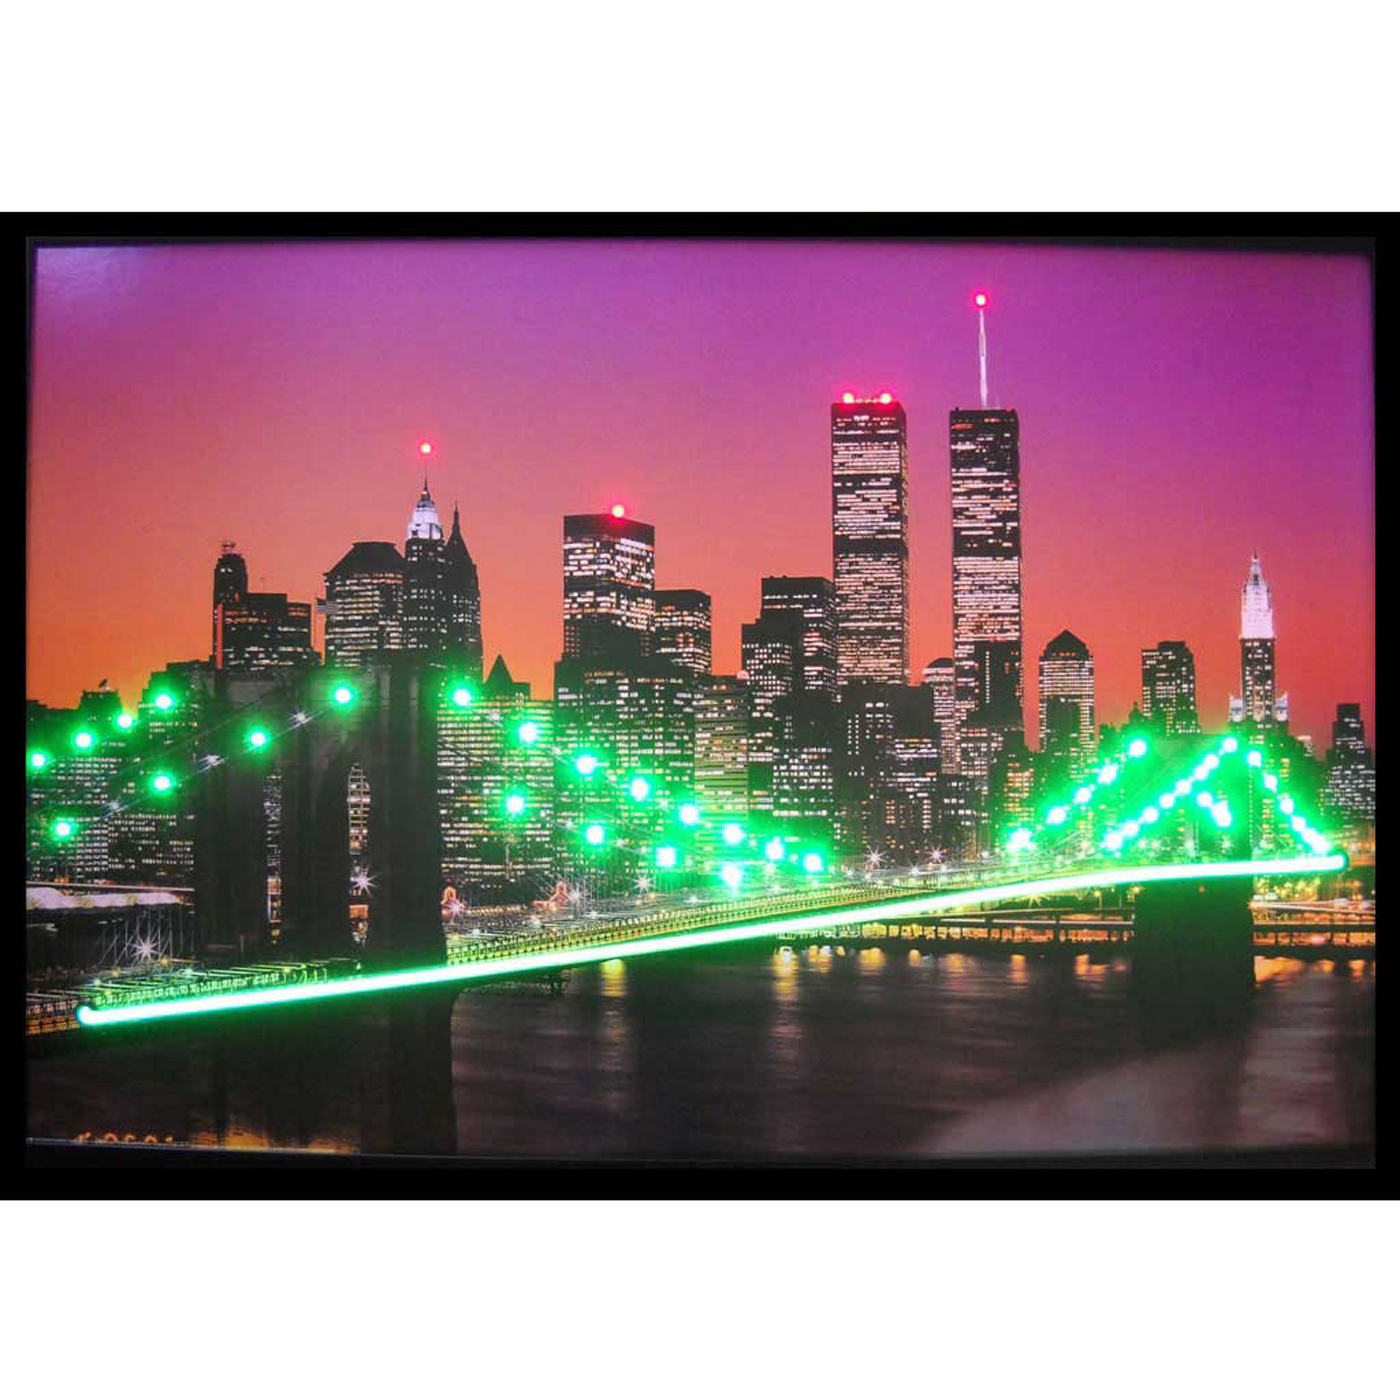 Superb Lights To Hang In Room #2: New-york-skyline-neon-led-art-picture-by-neonetics.jpg